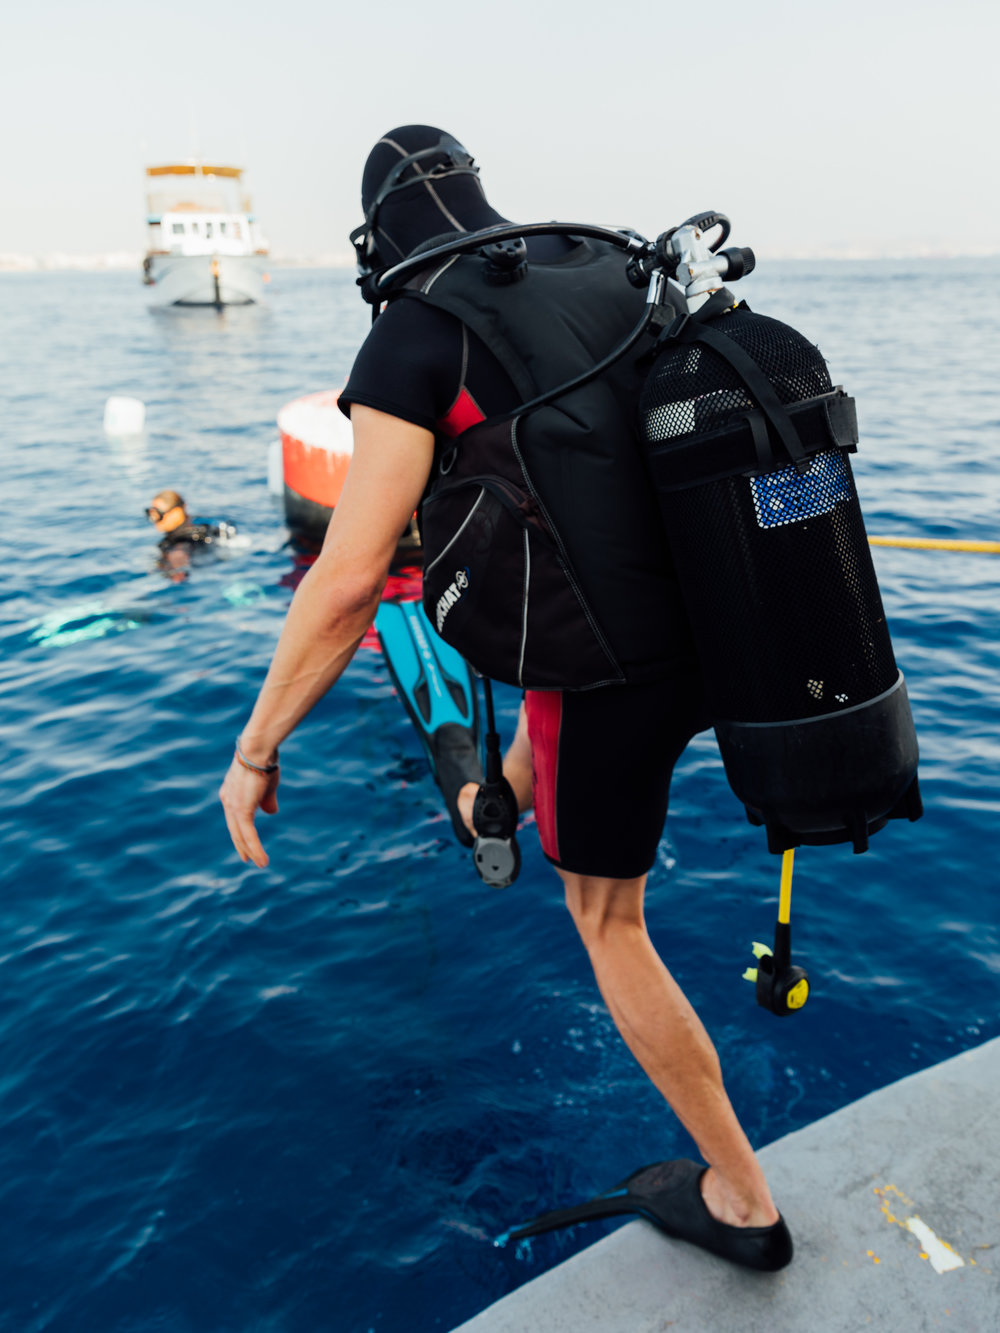 BenReadPhotography_TUI-Flyjournal-Diving-30.jpg